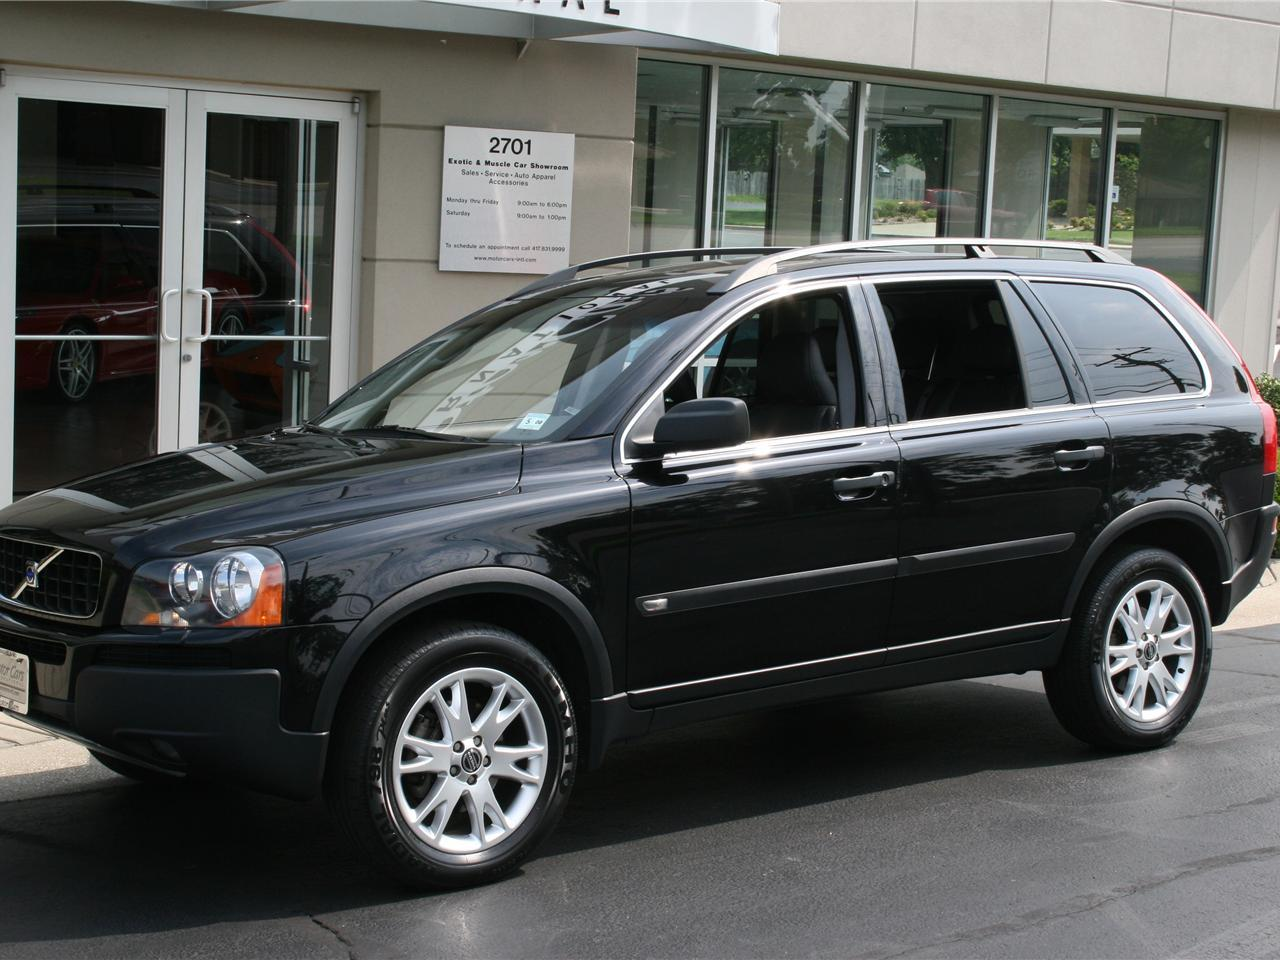 2004 Volvo Xc90 Photos, Informations, Articles - BestCarMag.com